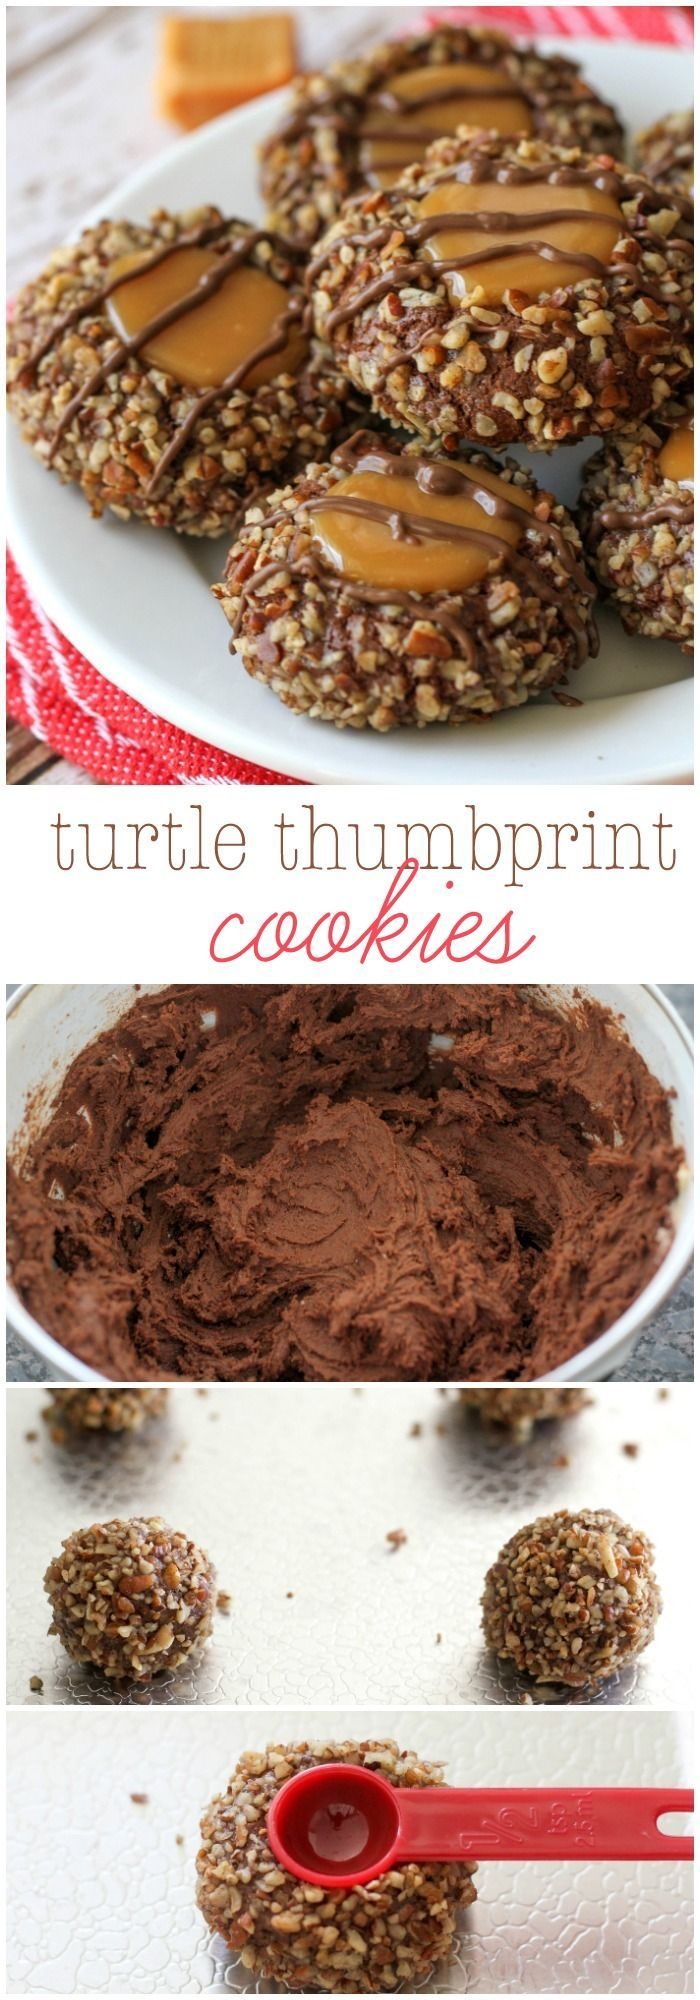 Delicious Turtle Thumbprint Cookies - a chocolate, caramel and nut cookie recipe everyone will love!!